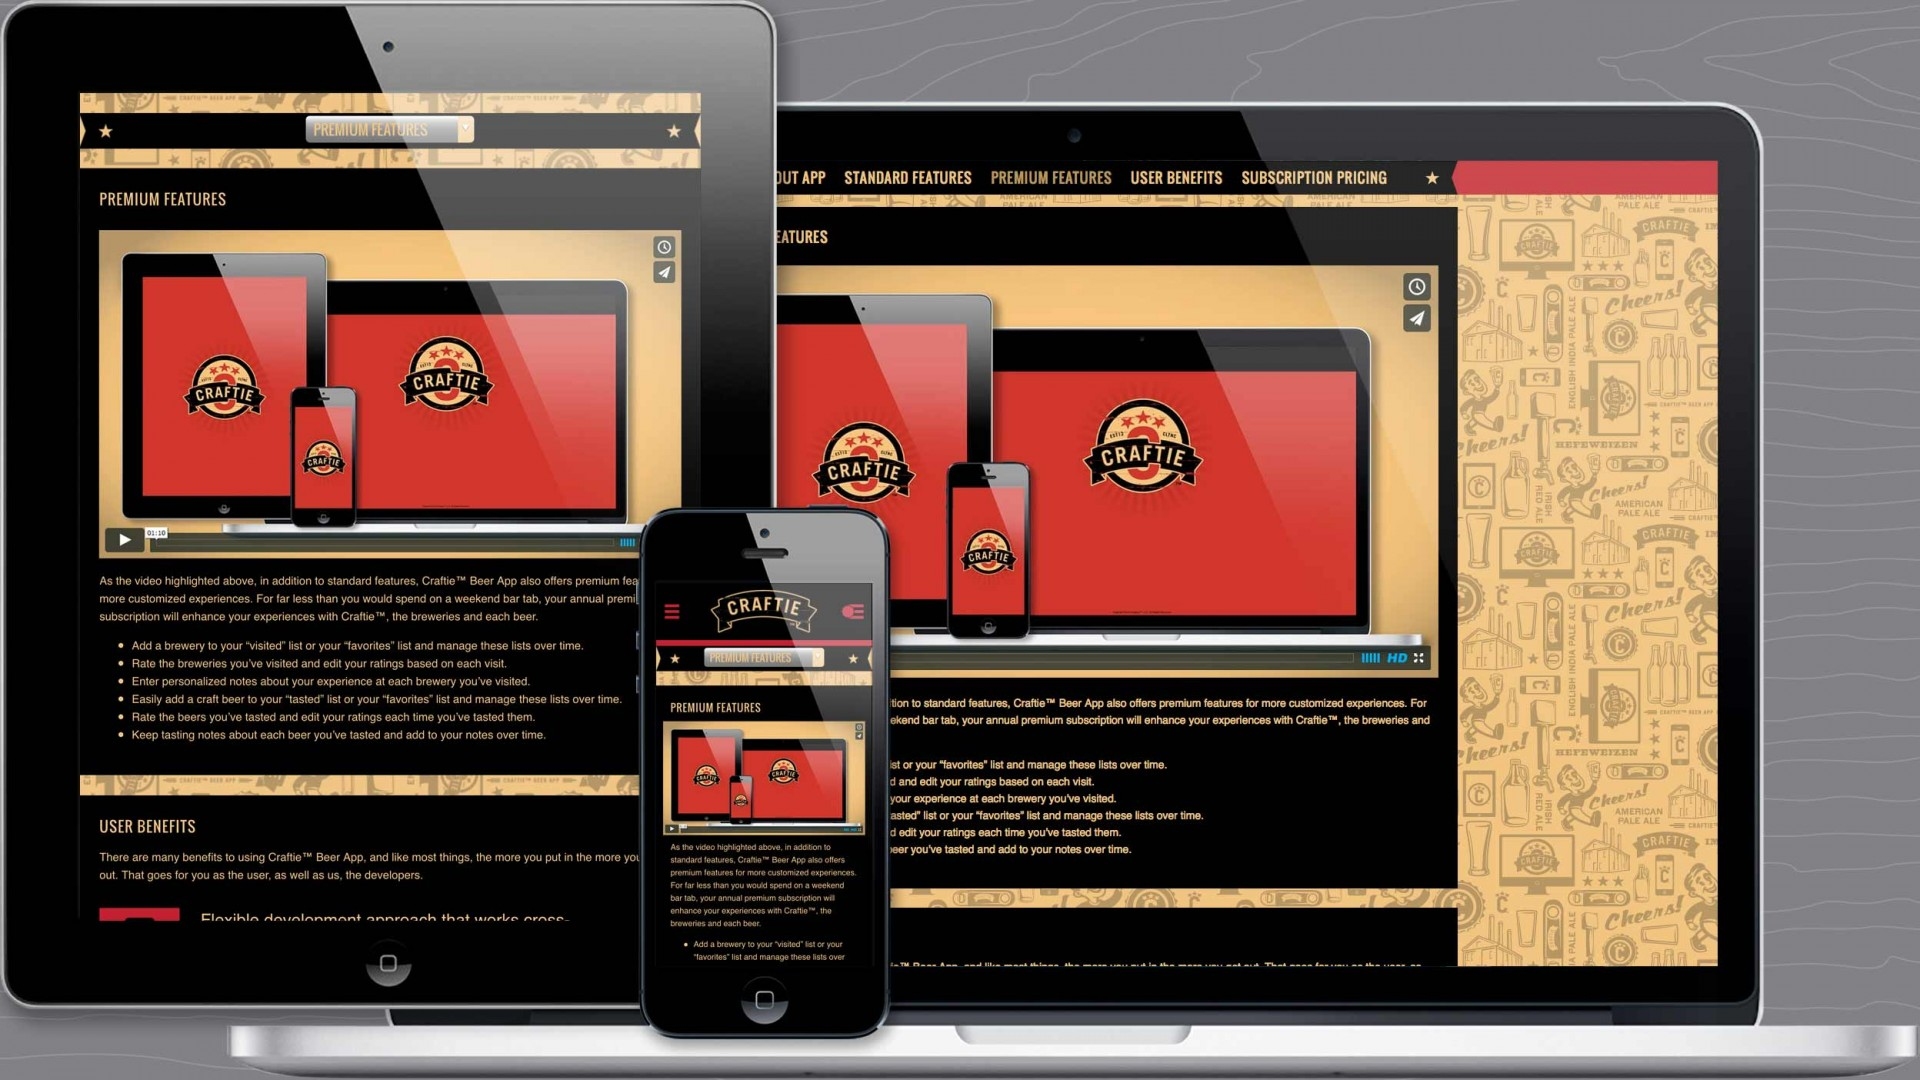 Premium Features page of Craftie™ responsive marketing website.